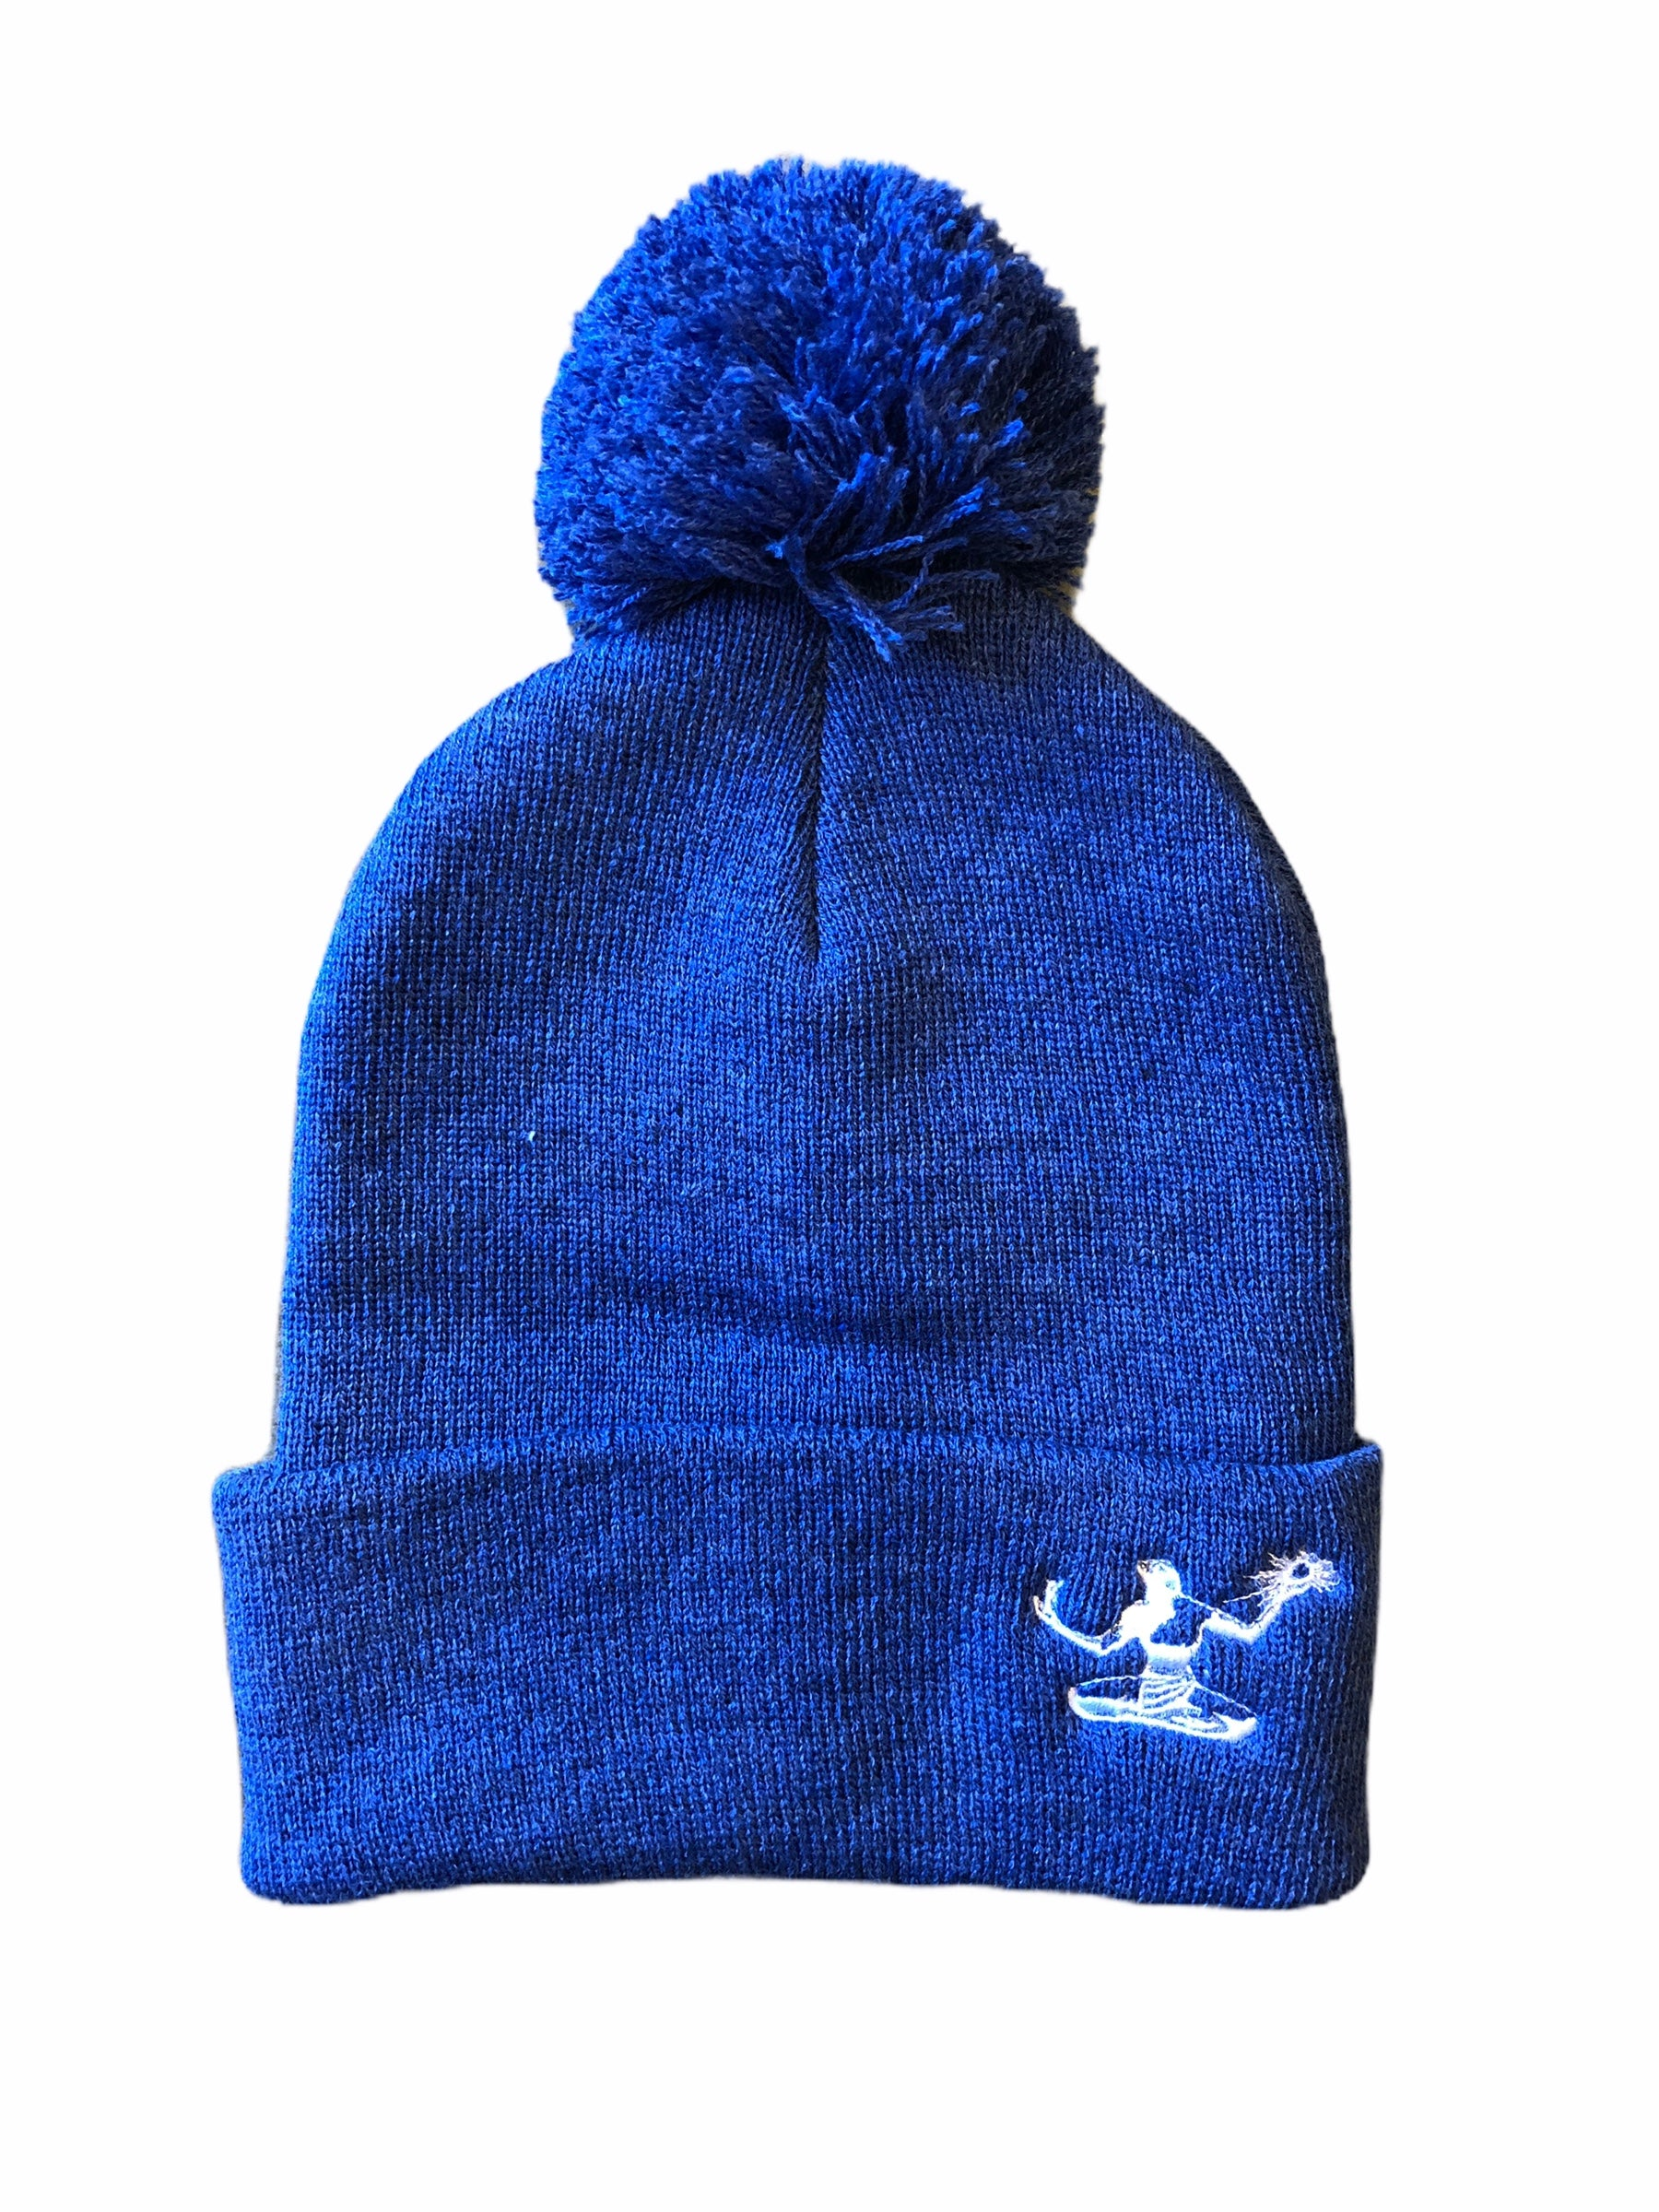 Spirit of Detroit Pom Pom Knit Cuffed Beanie / Heather Dark Royal - Pure Detroit